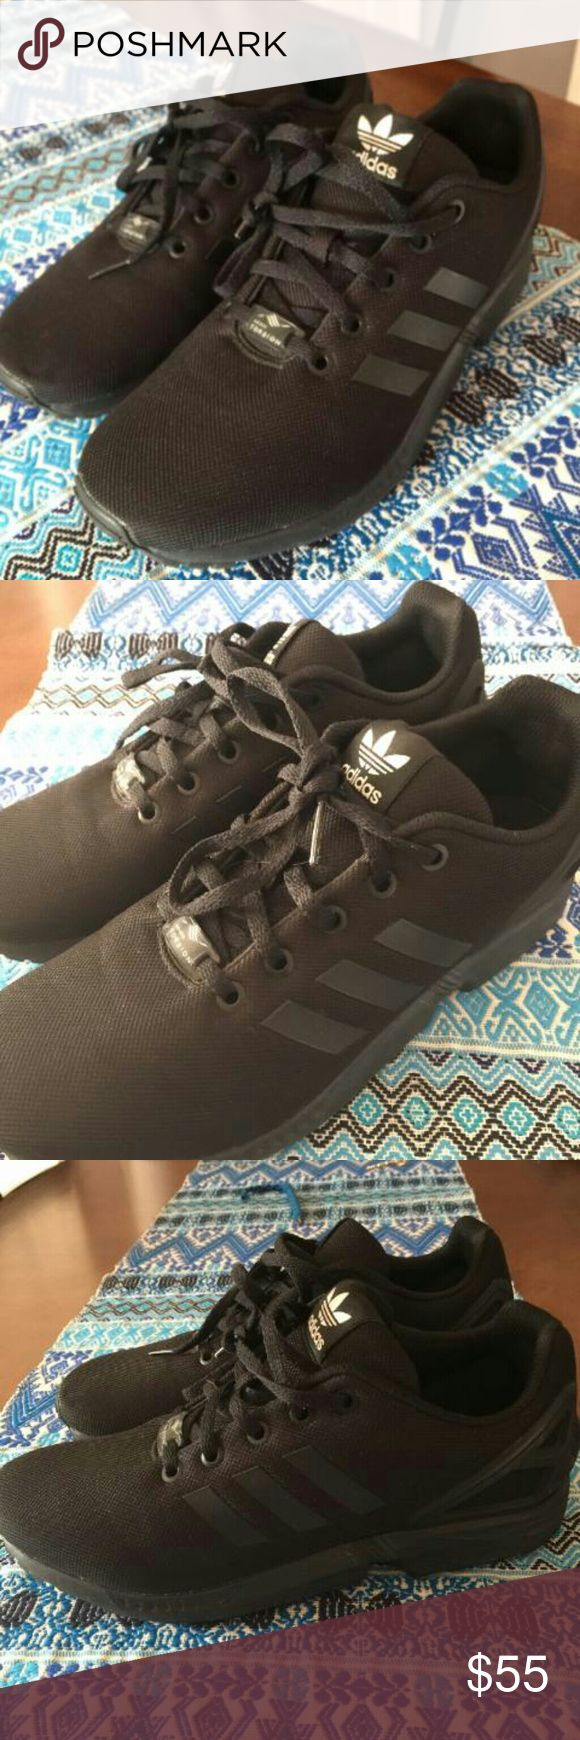 Adidas ZX Flux Black Sneakers Size:7  -Only worn about 3 times -8/10 condition - I don't wear these anymore so I'm looking to get rid of them -No trades adidas Shoes Athletic Shoes